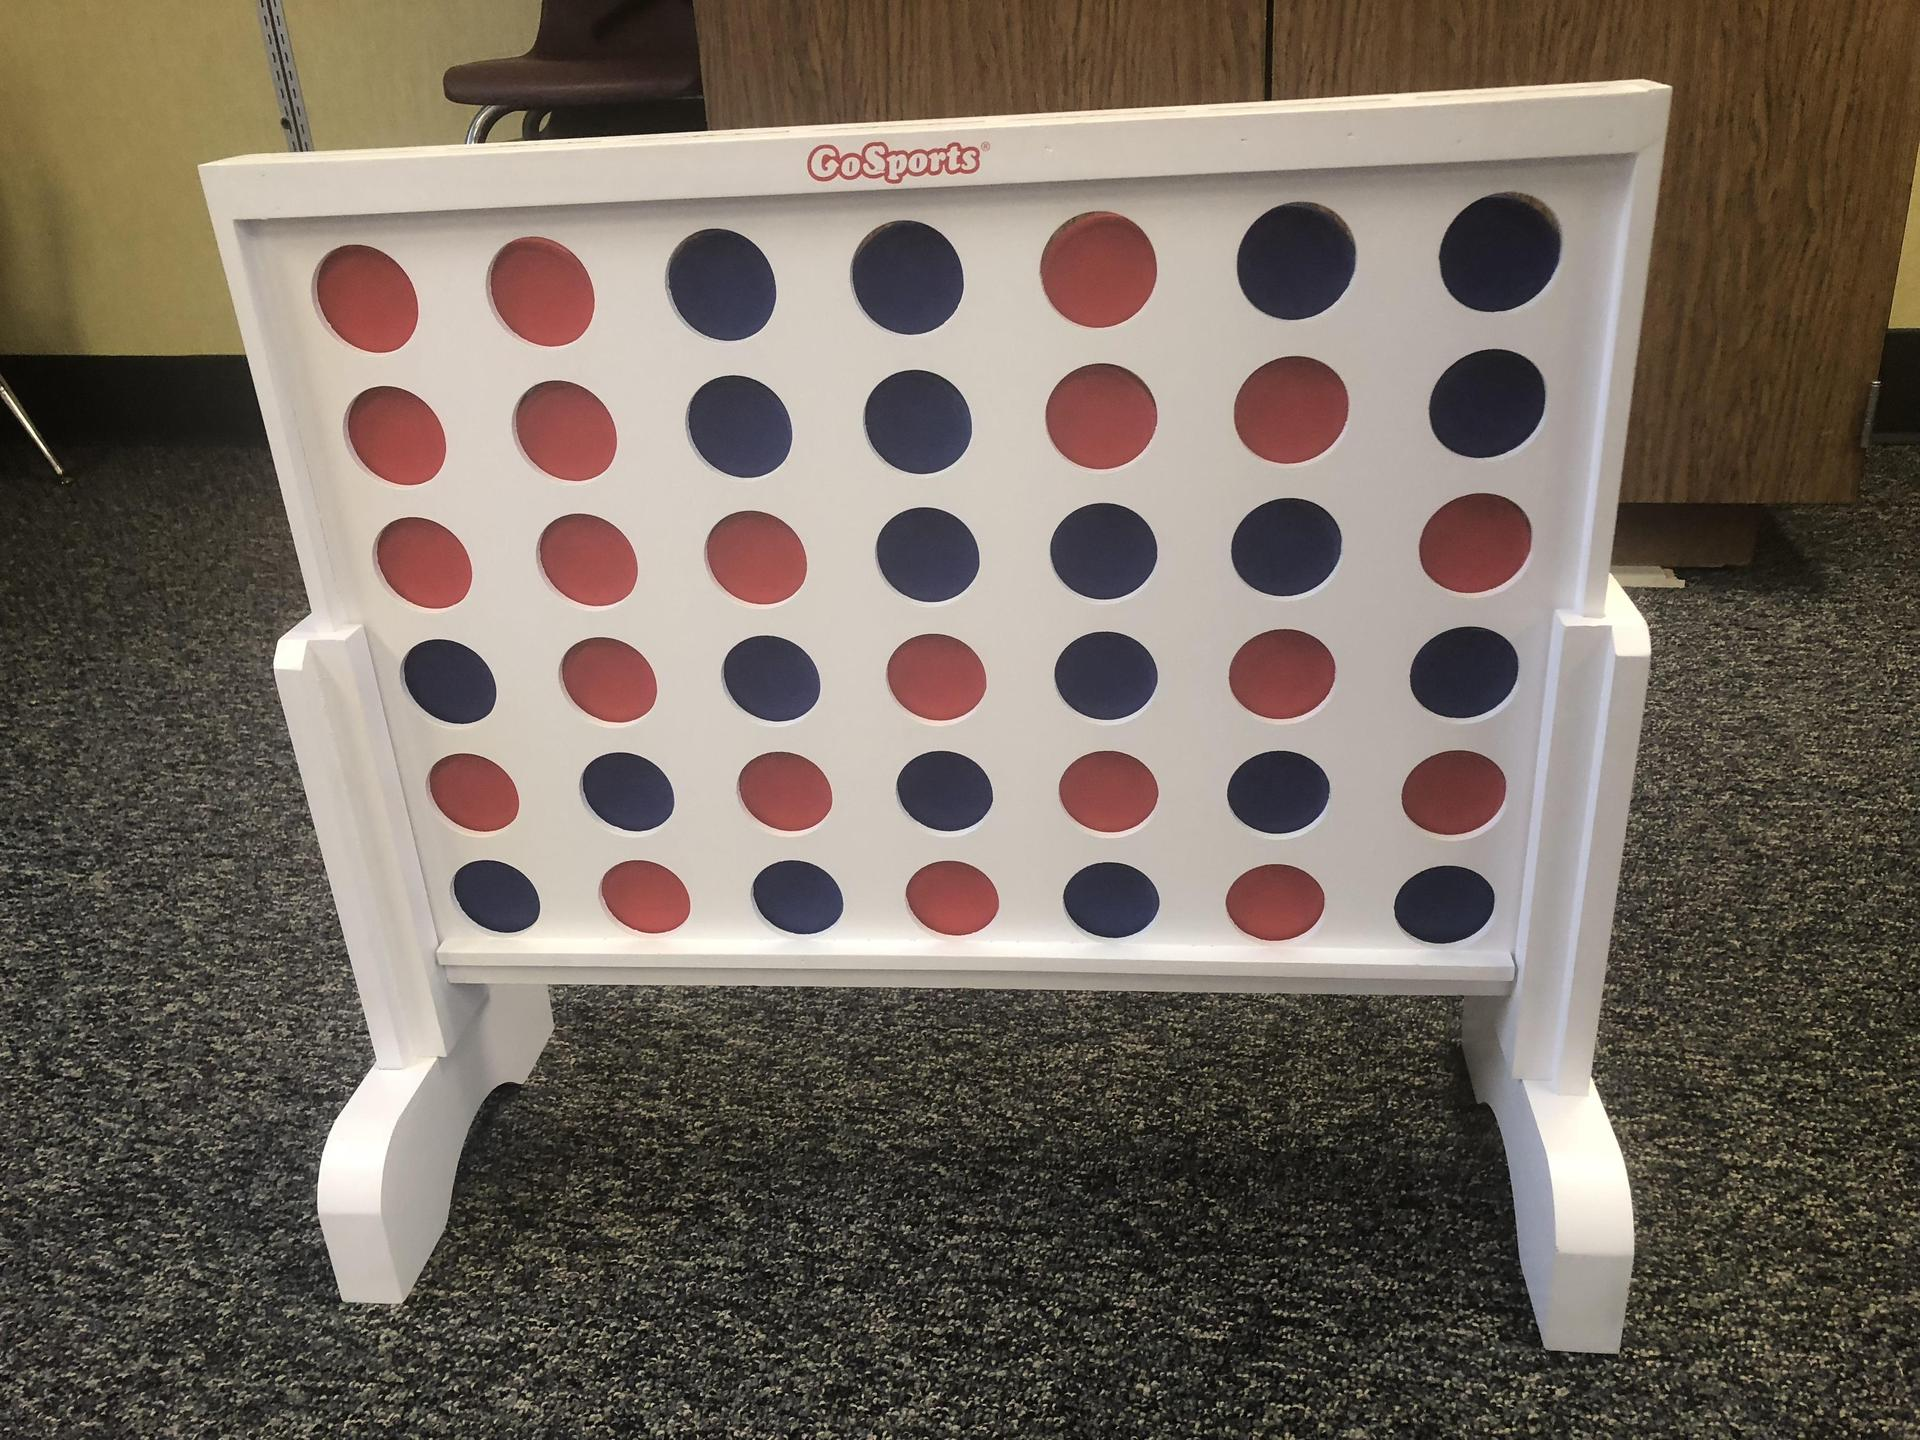 Connect Four is available for students to use.